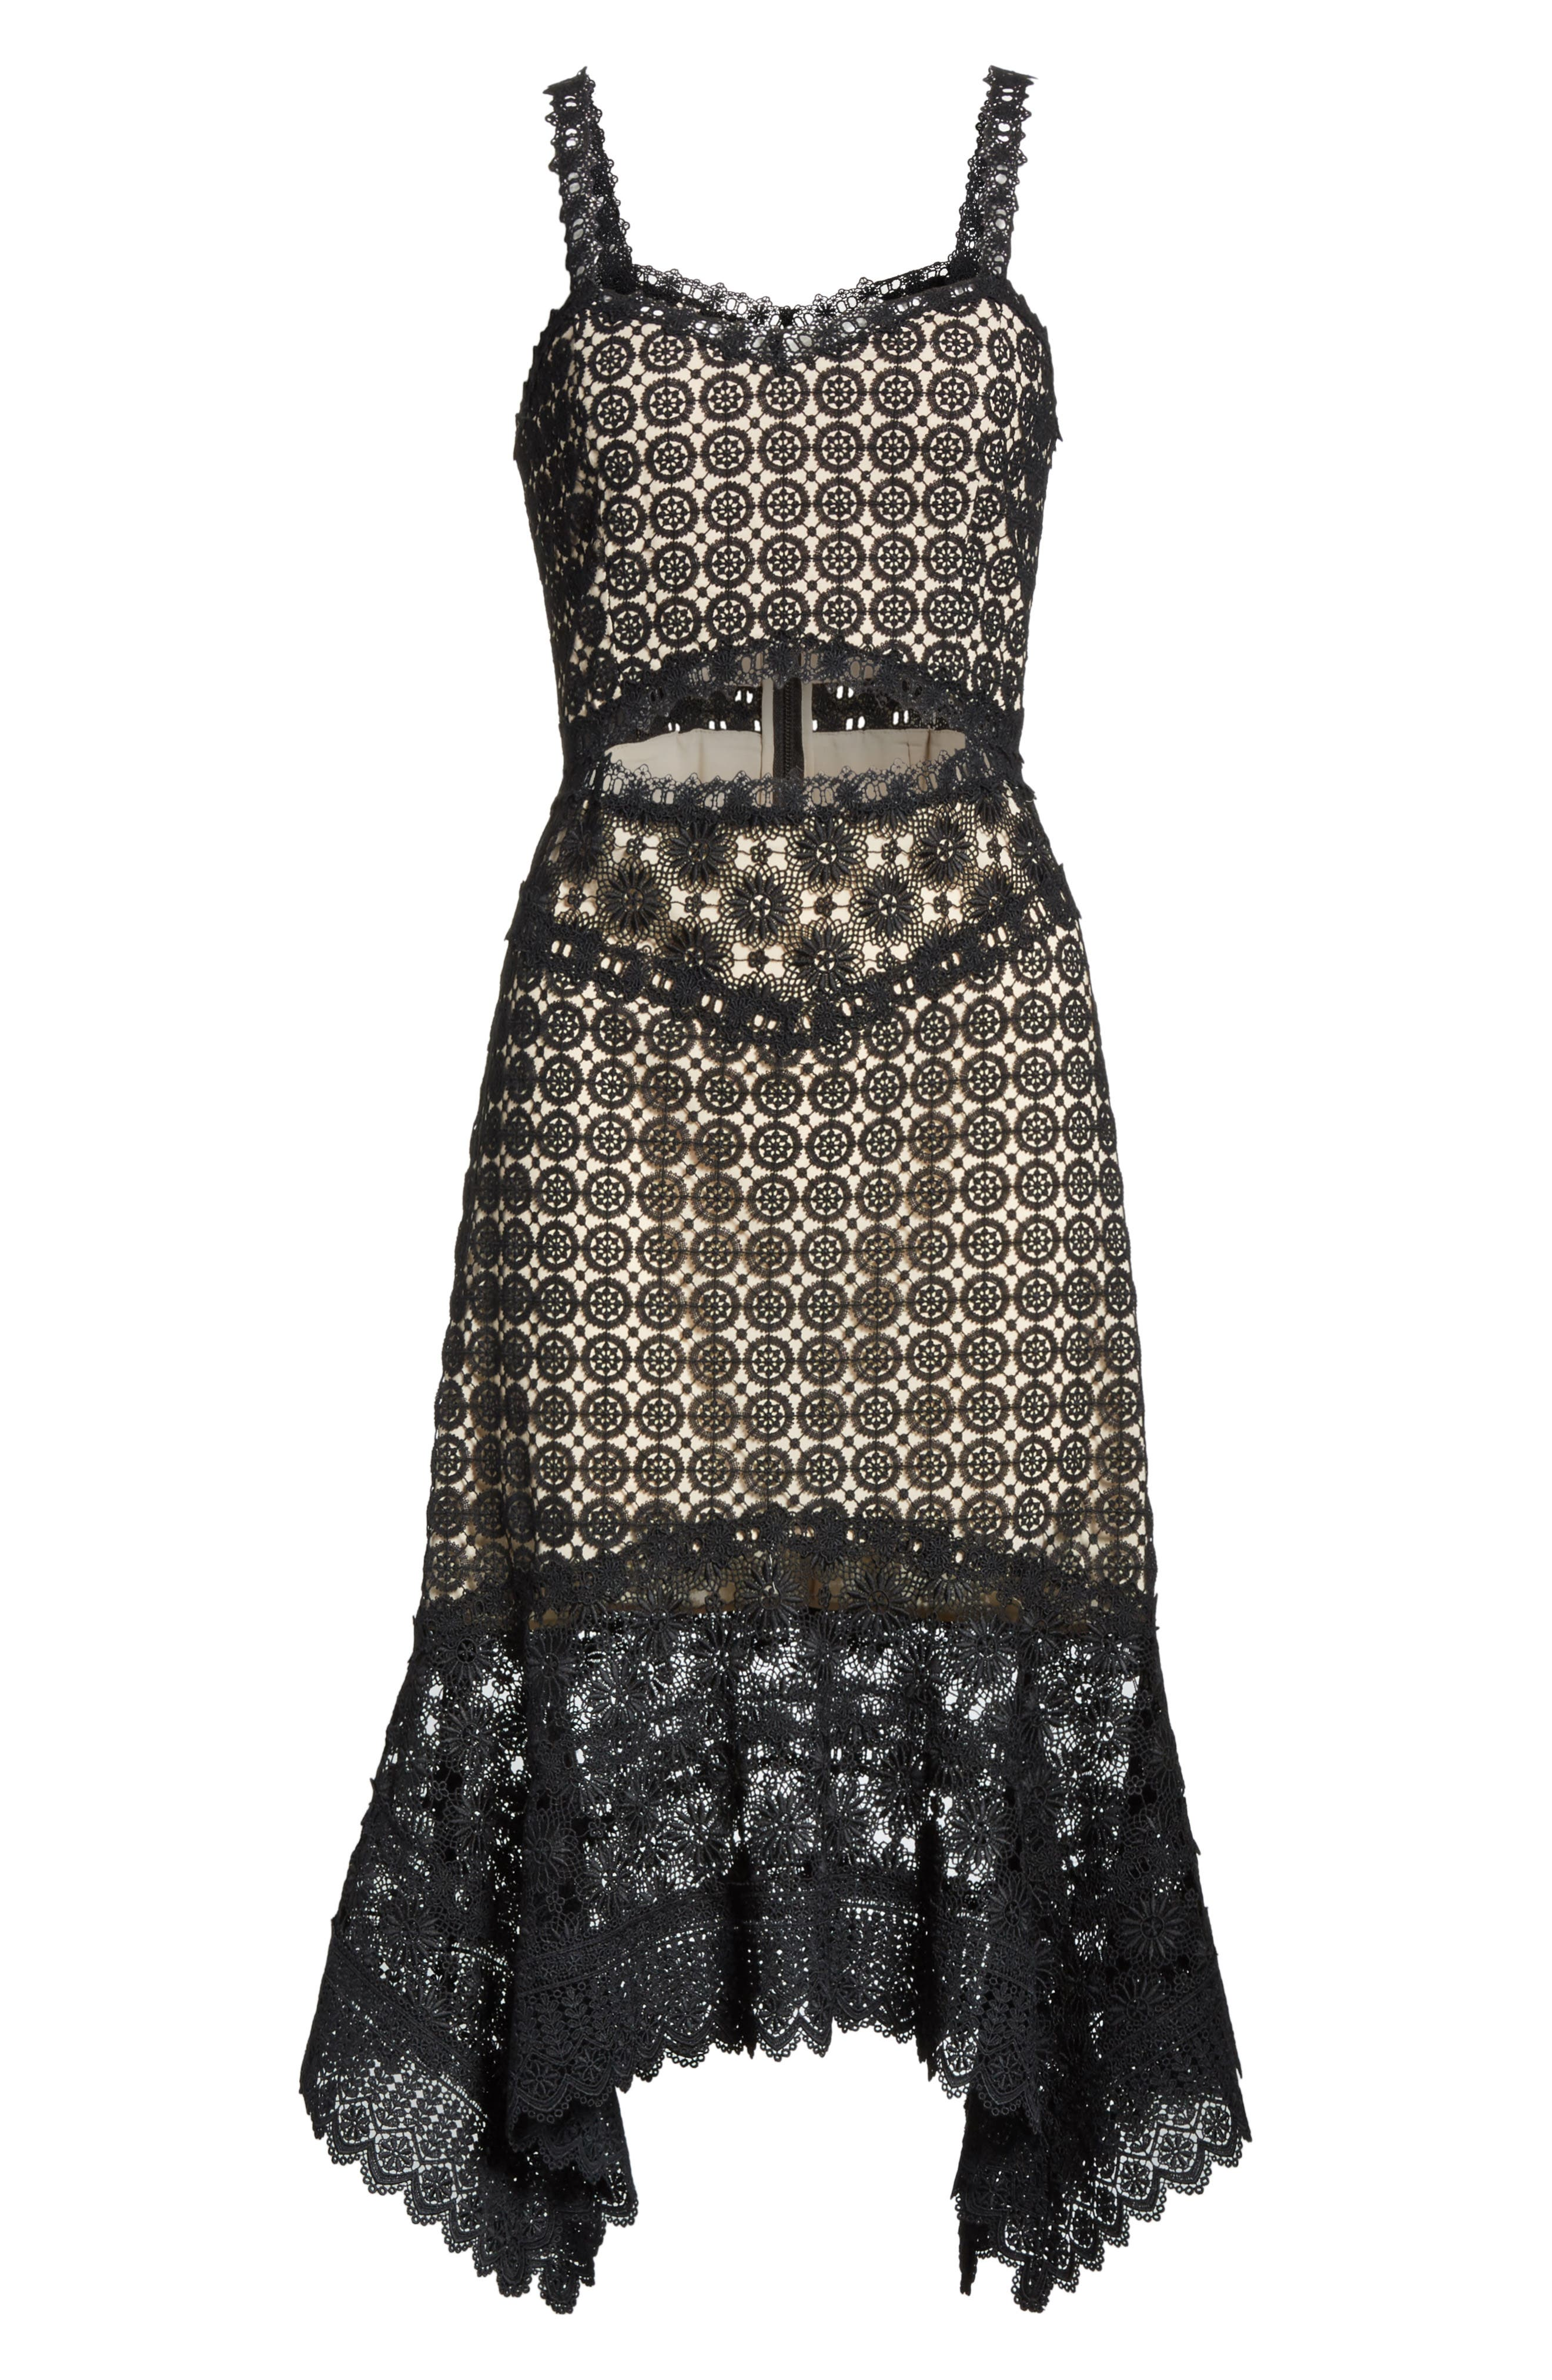 Tamika Handkerchief Lace Dress,                             Alternate thumbnail 6, color,                             Black/ Sesame